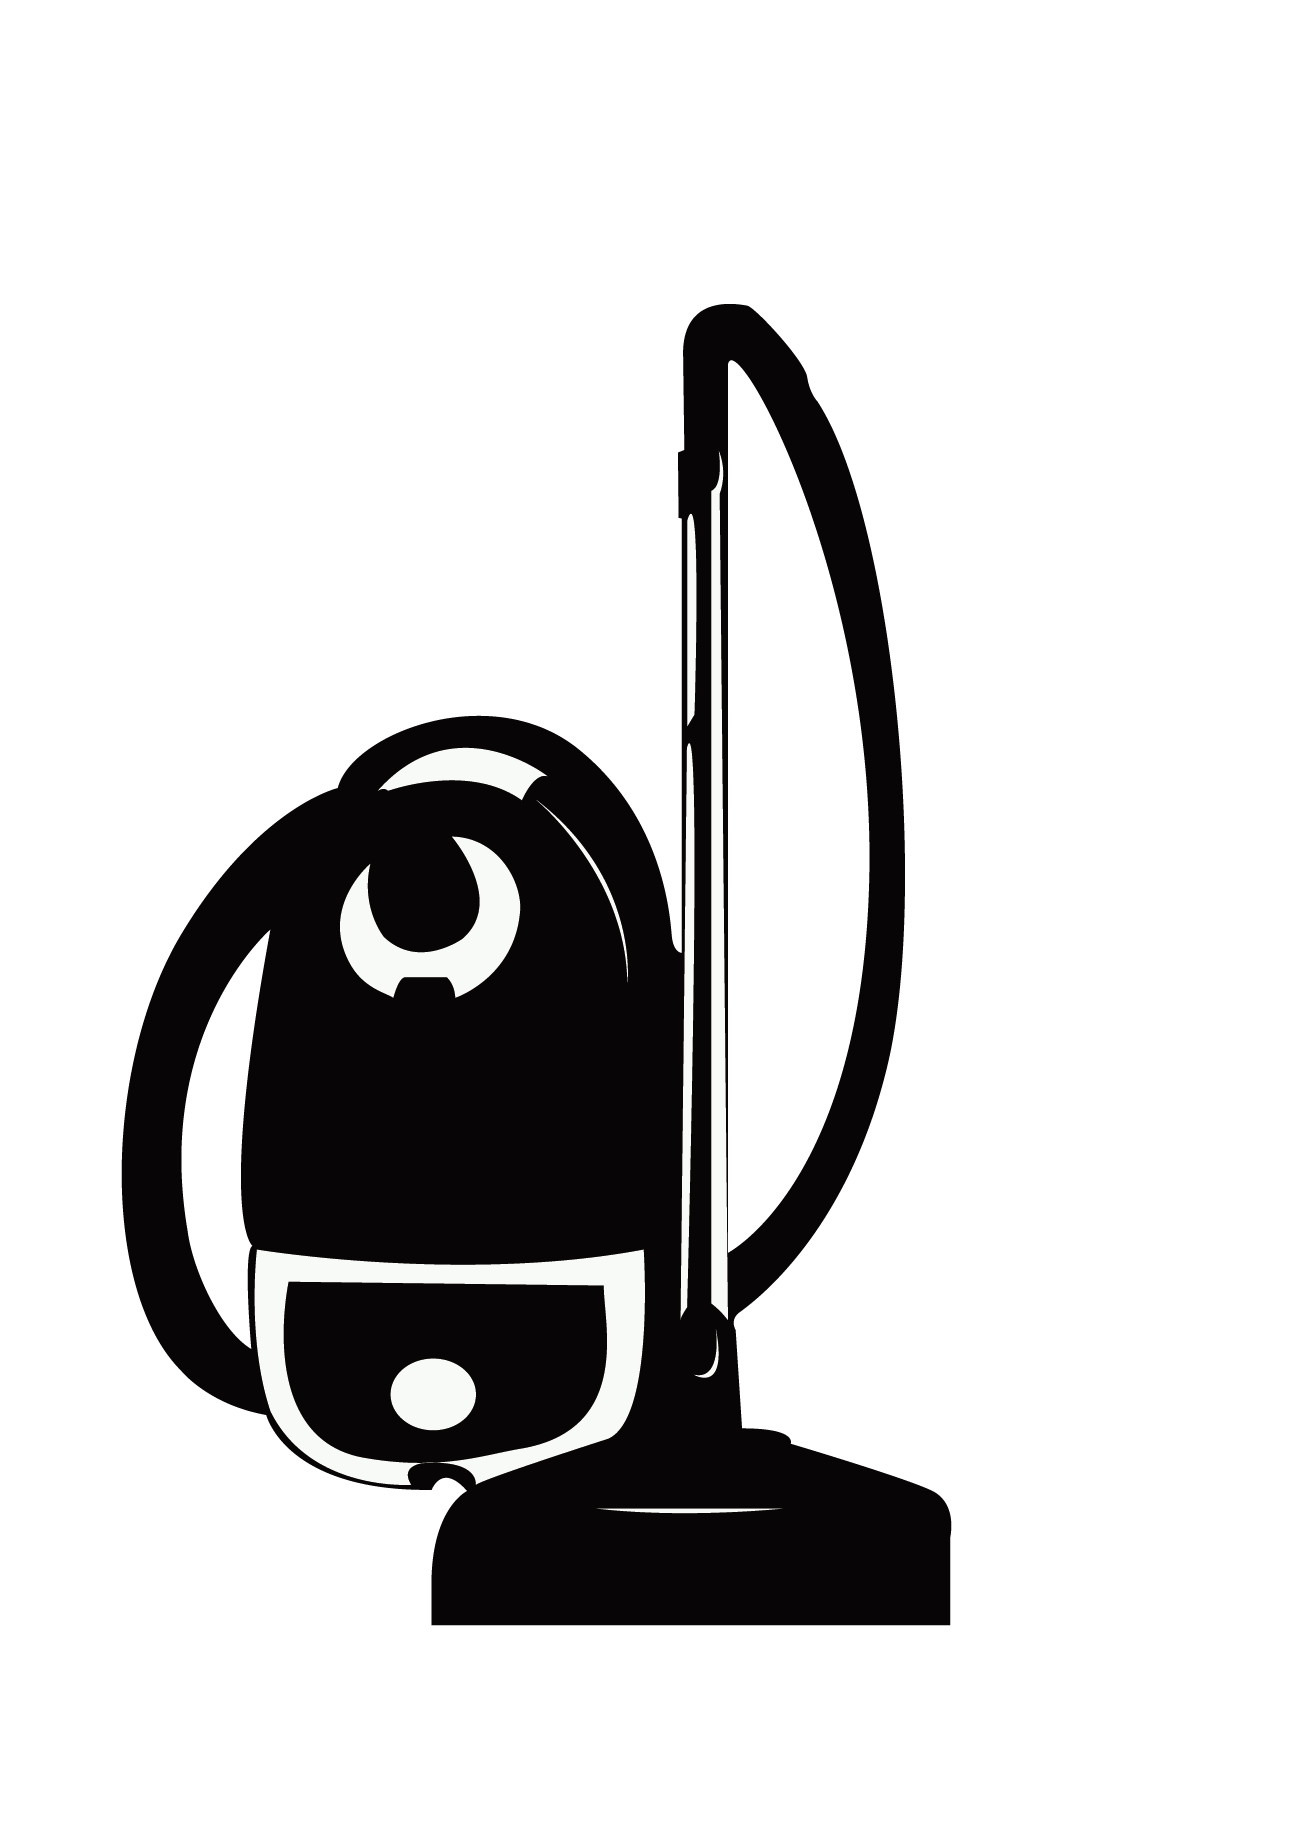 Dust clipart vacuum. Cleaner silhouette at getdrawings